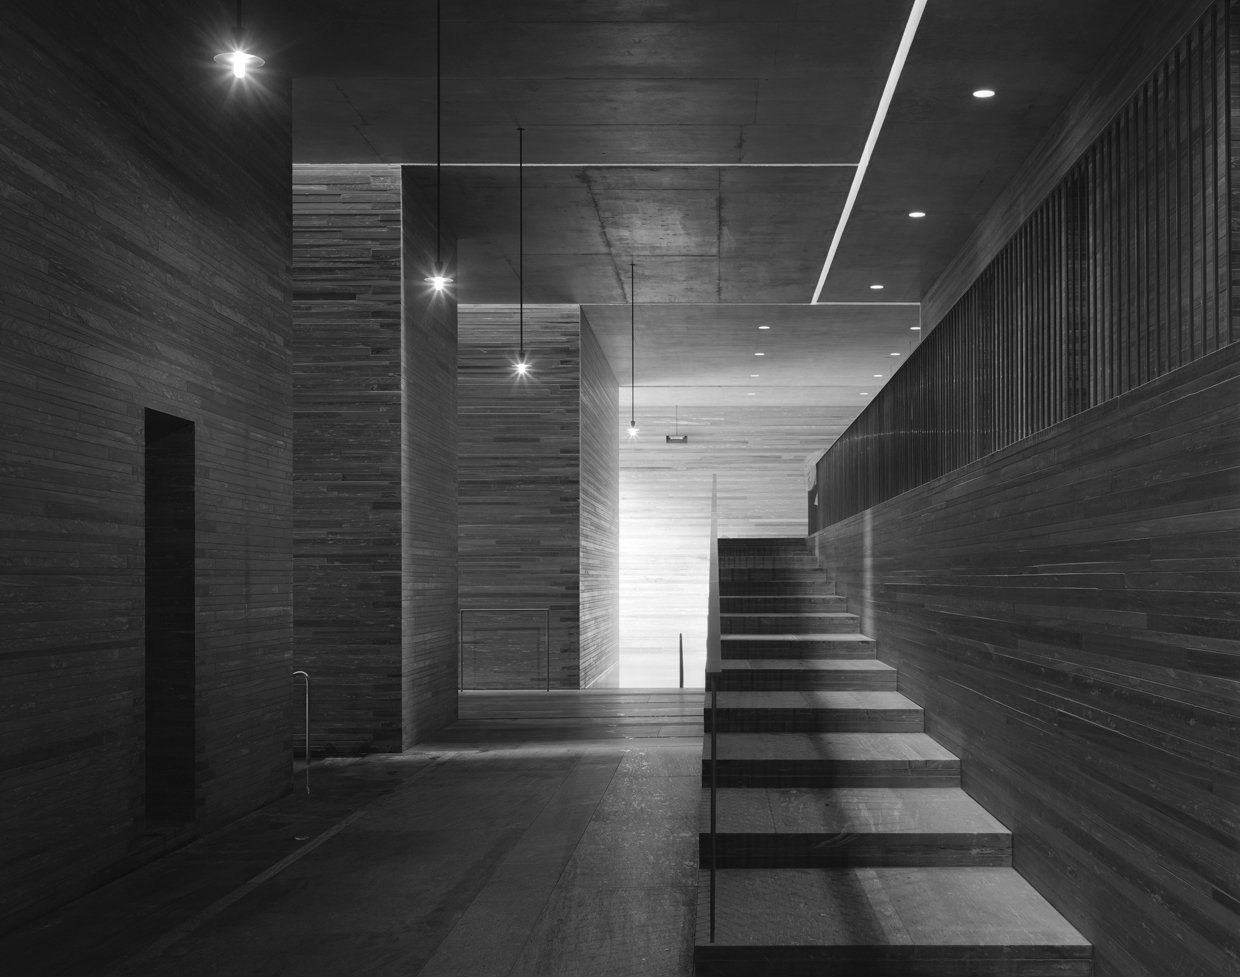 Terme di vals di peter zumthor for Mudroom a forma di l